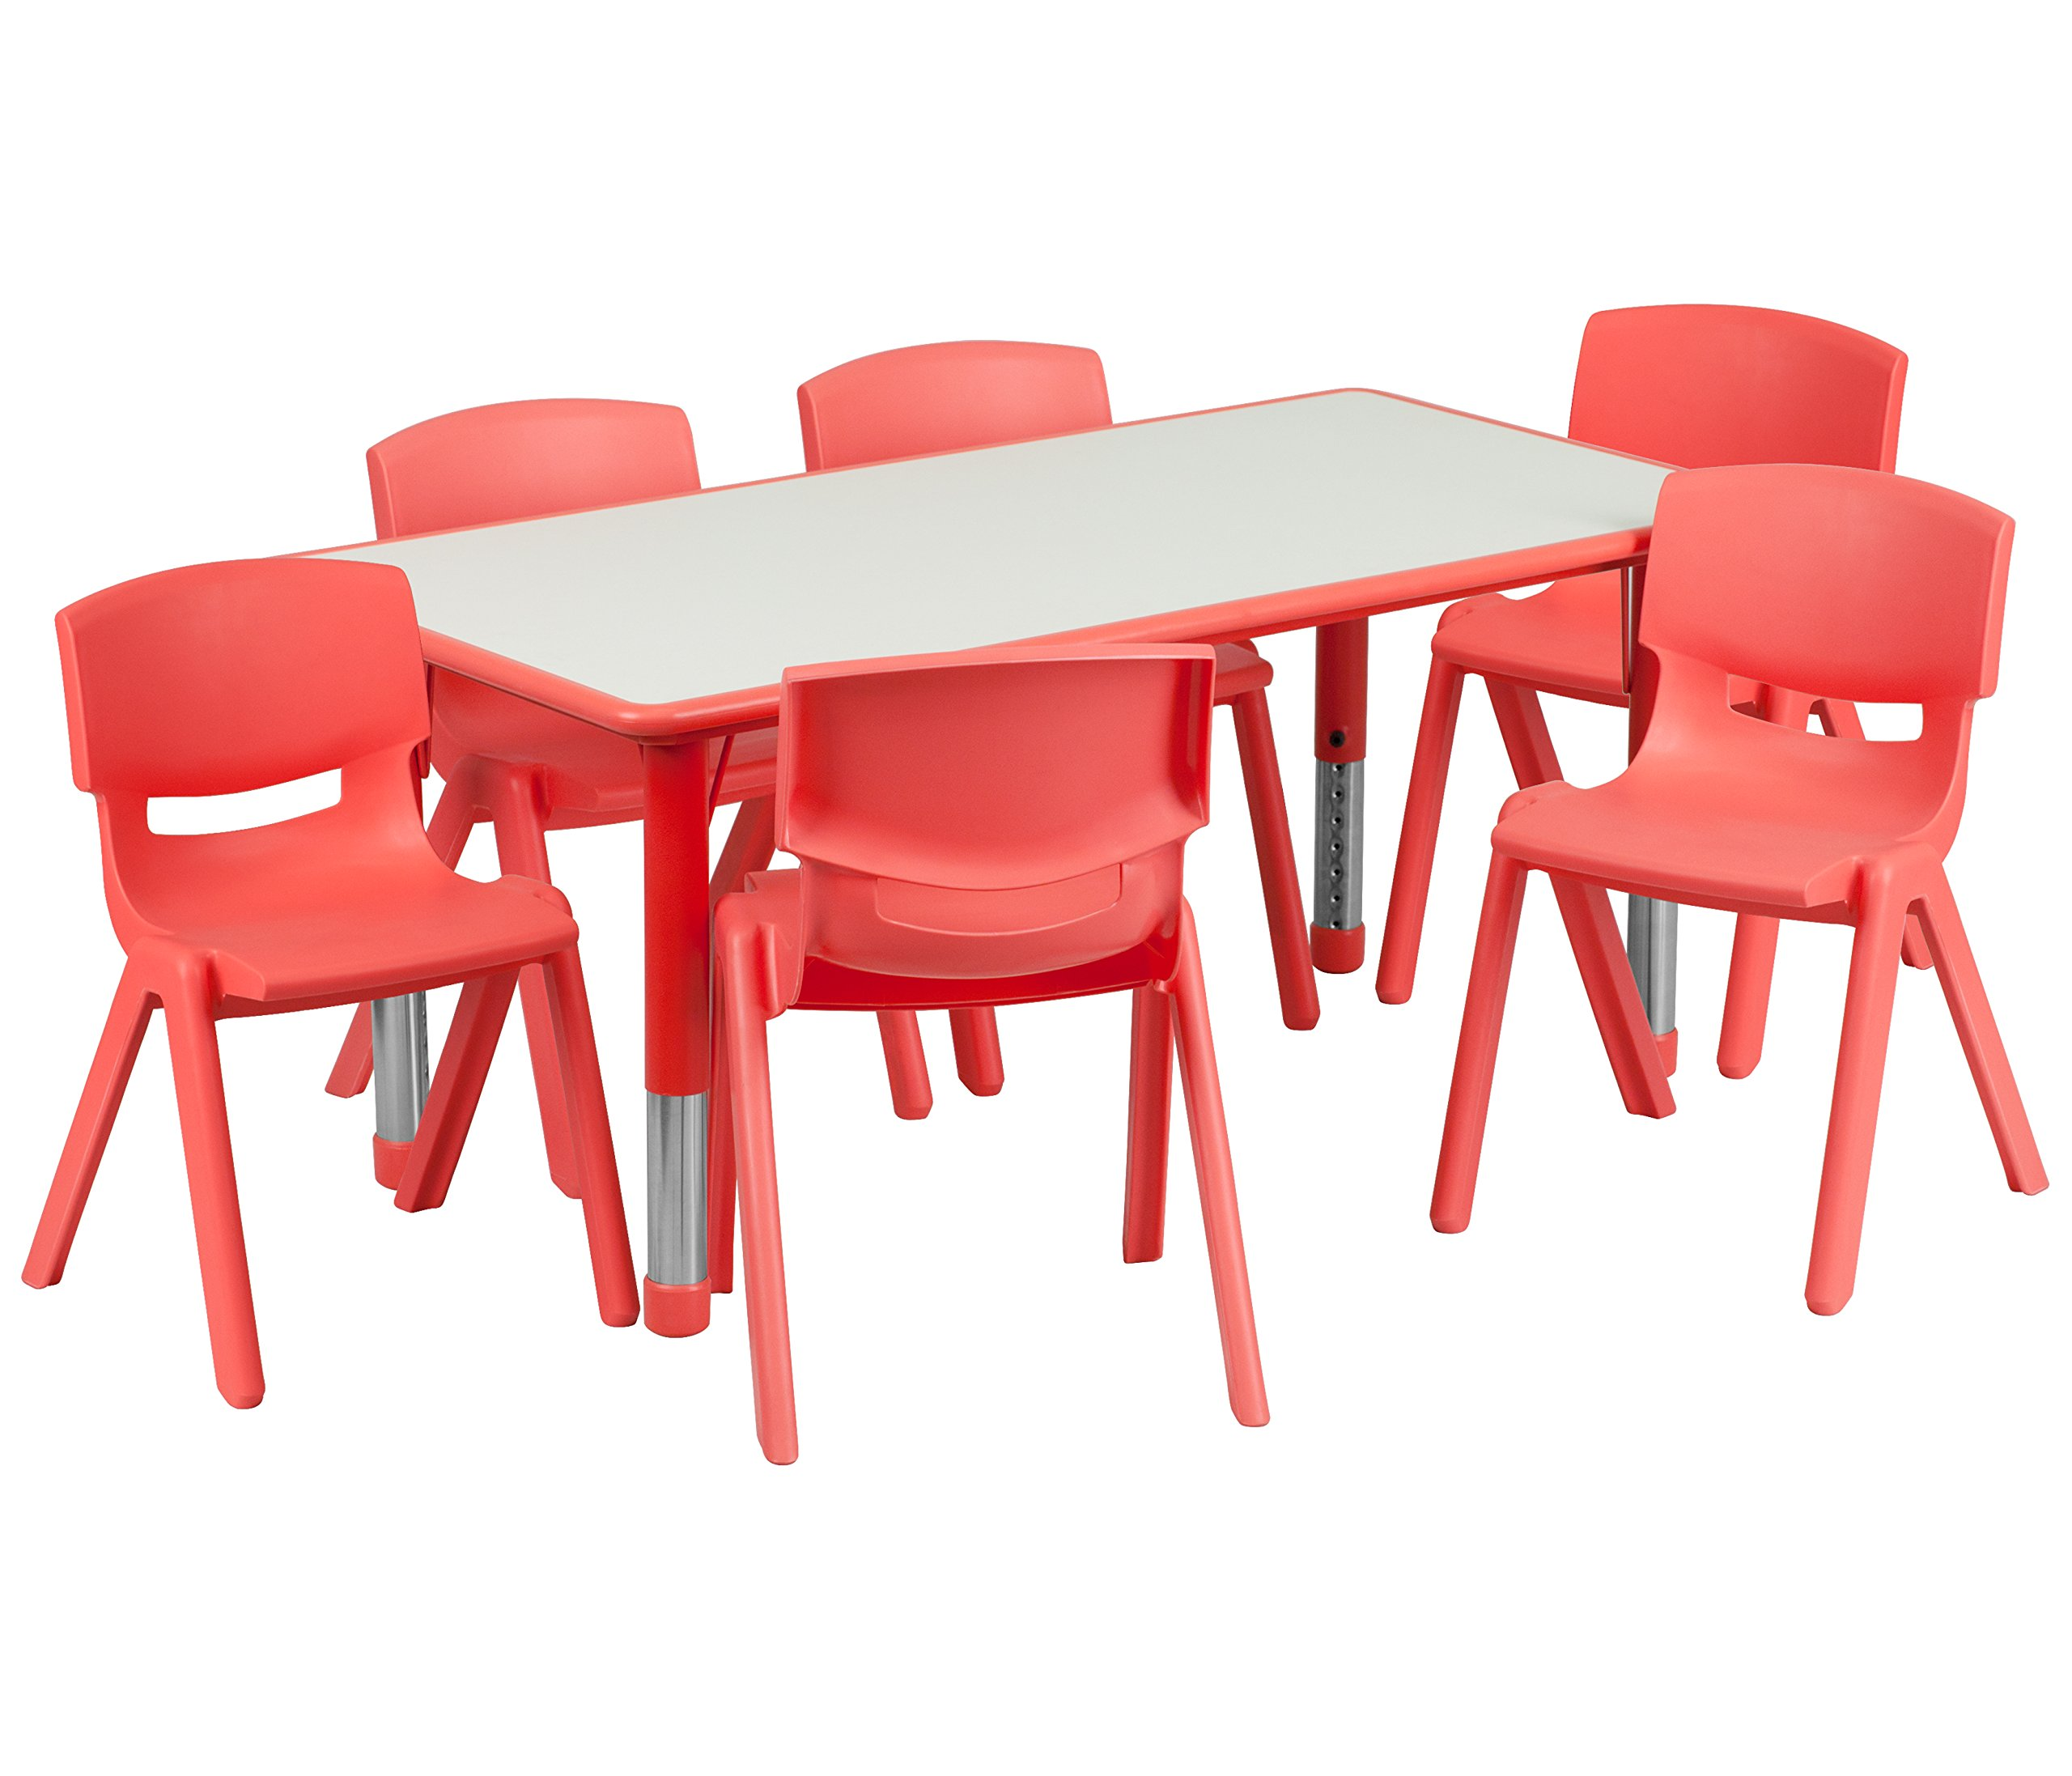 Flash Furniture 23.625''W x 47.25''L Rectangular Red Plastic Height Adjustable Activity Table Set with 6 Chairs by Flash Furniture